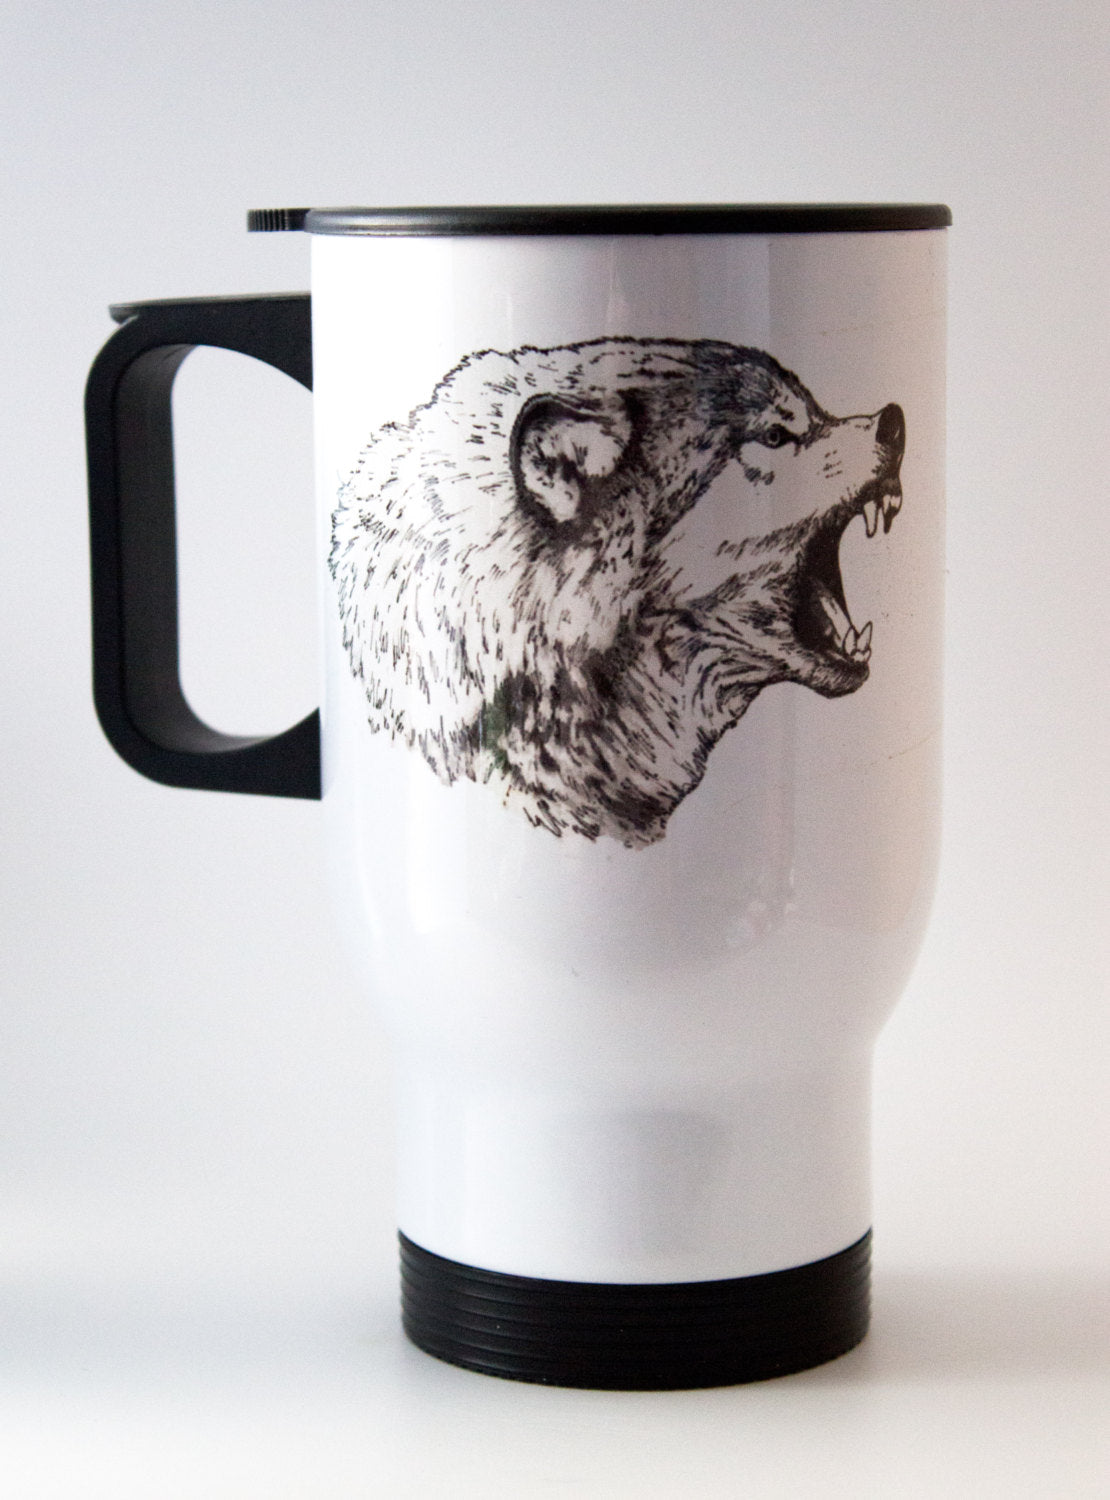 Game Of Thrones, Coffee is Coming, House of Stark, quote, Cup - ByCandlelight27